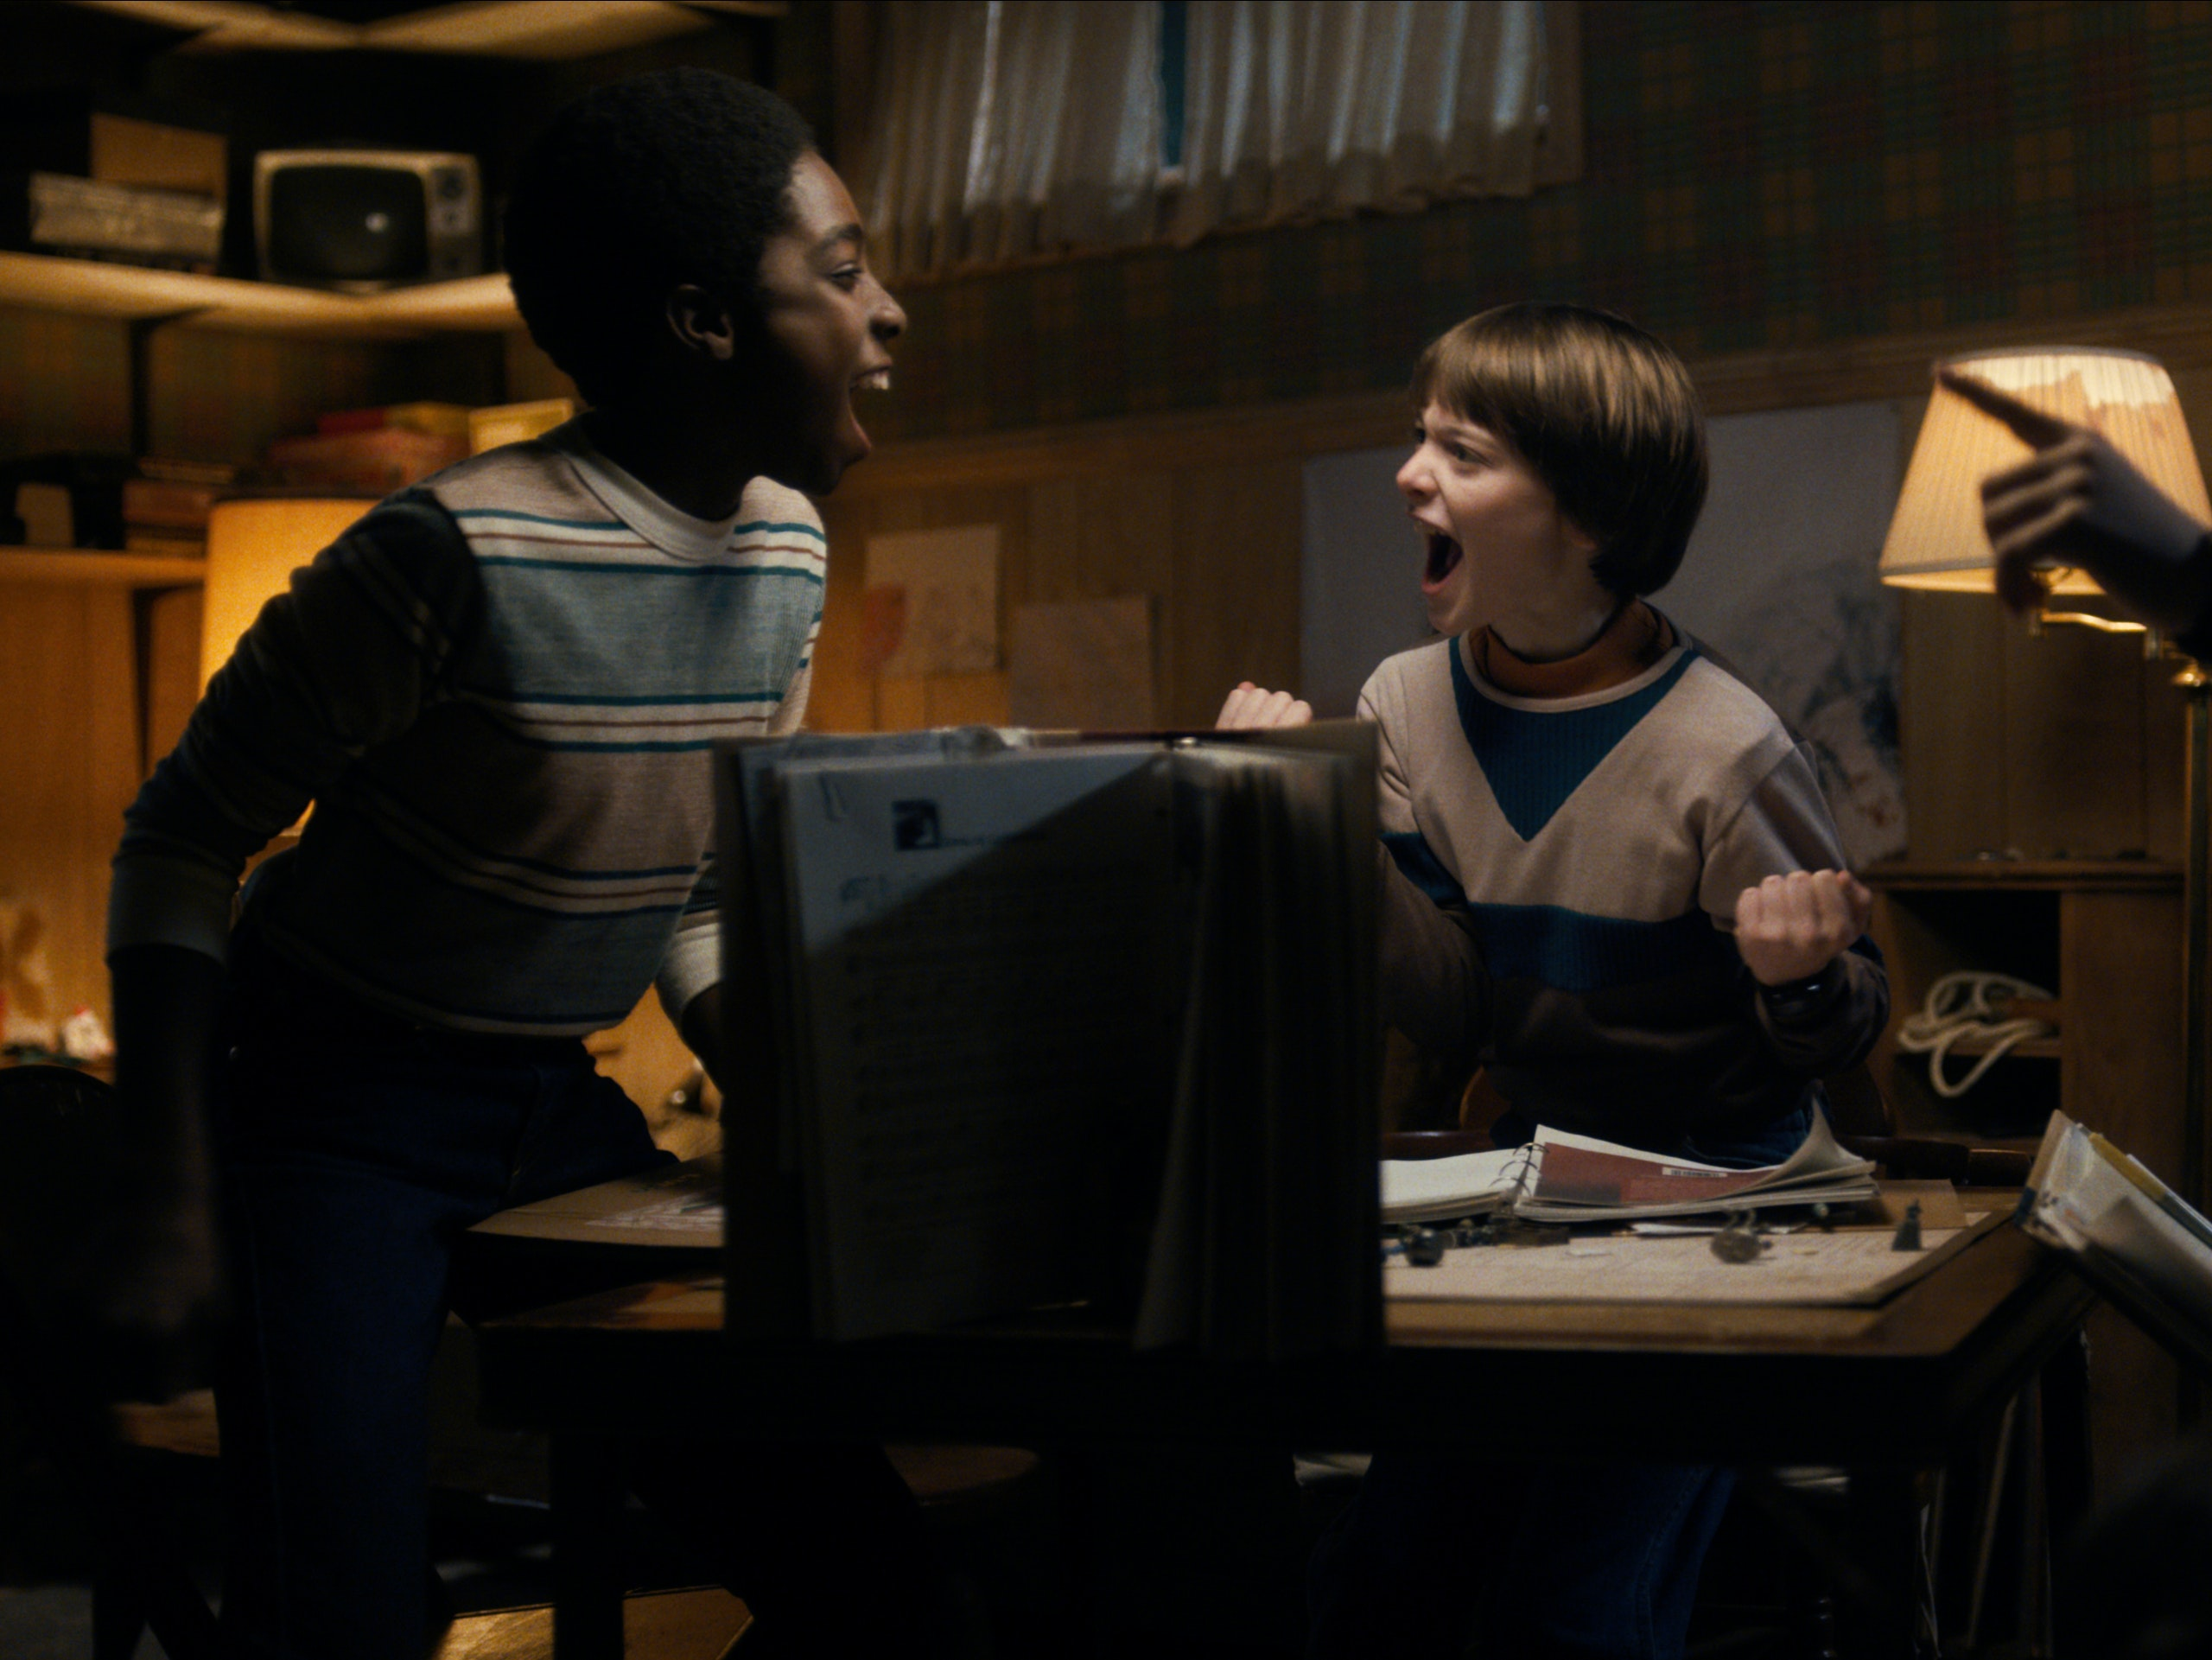 'Stranger Things' and its Ingenious Use of 'Dungeons & Dragons'